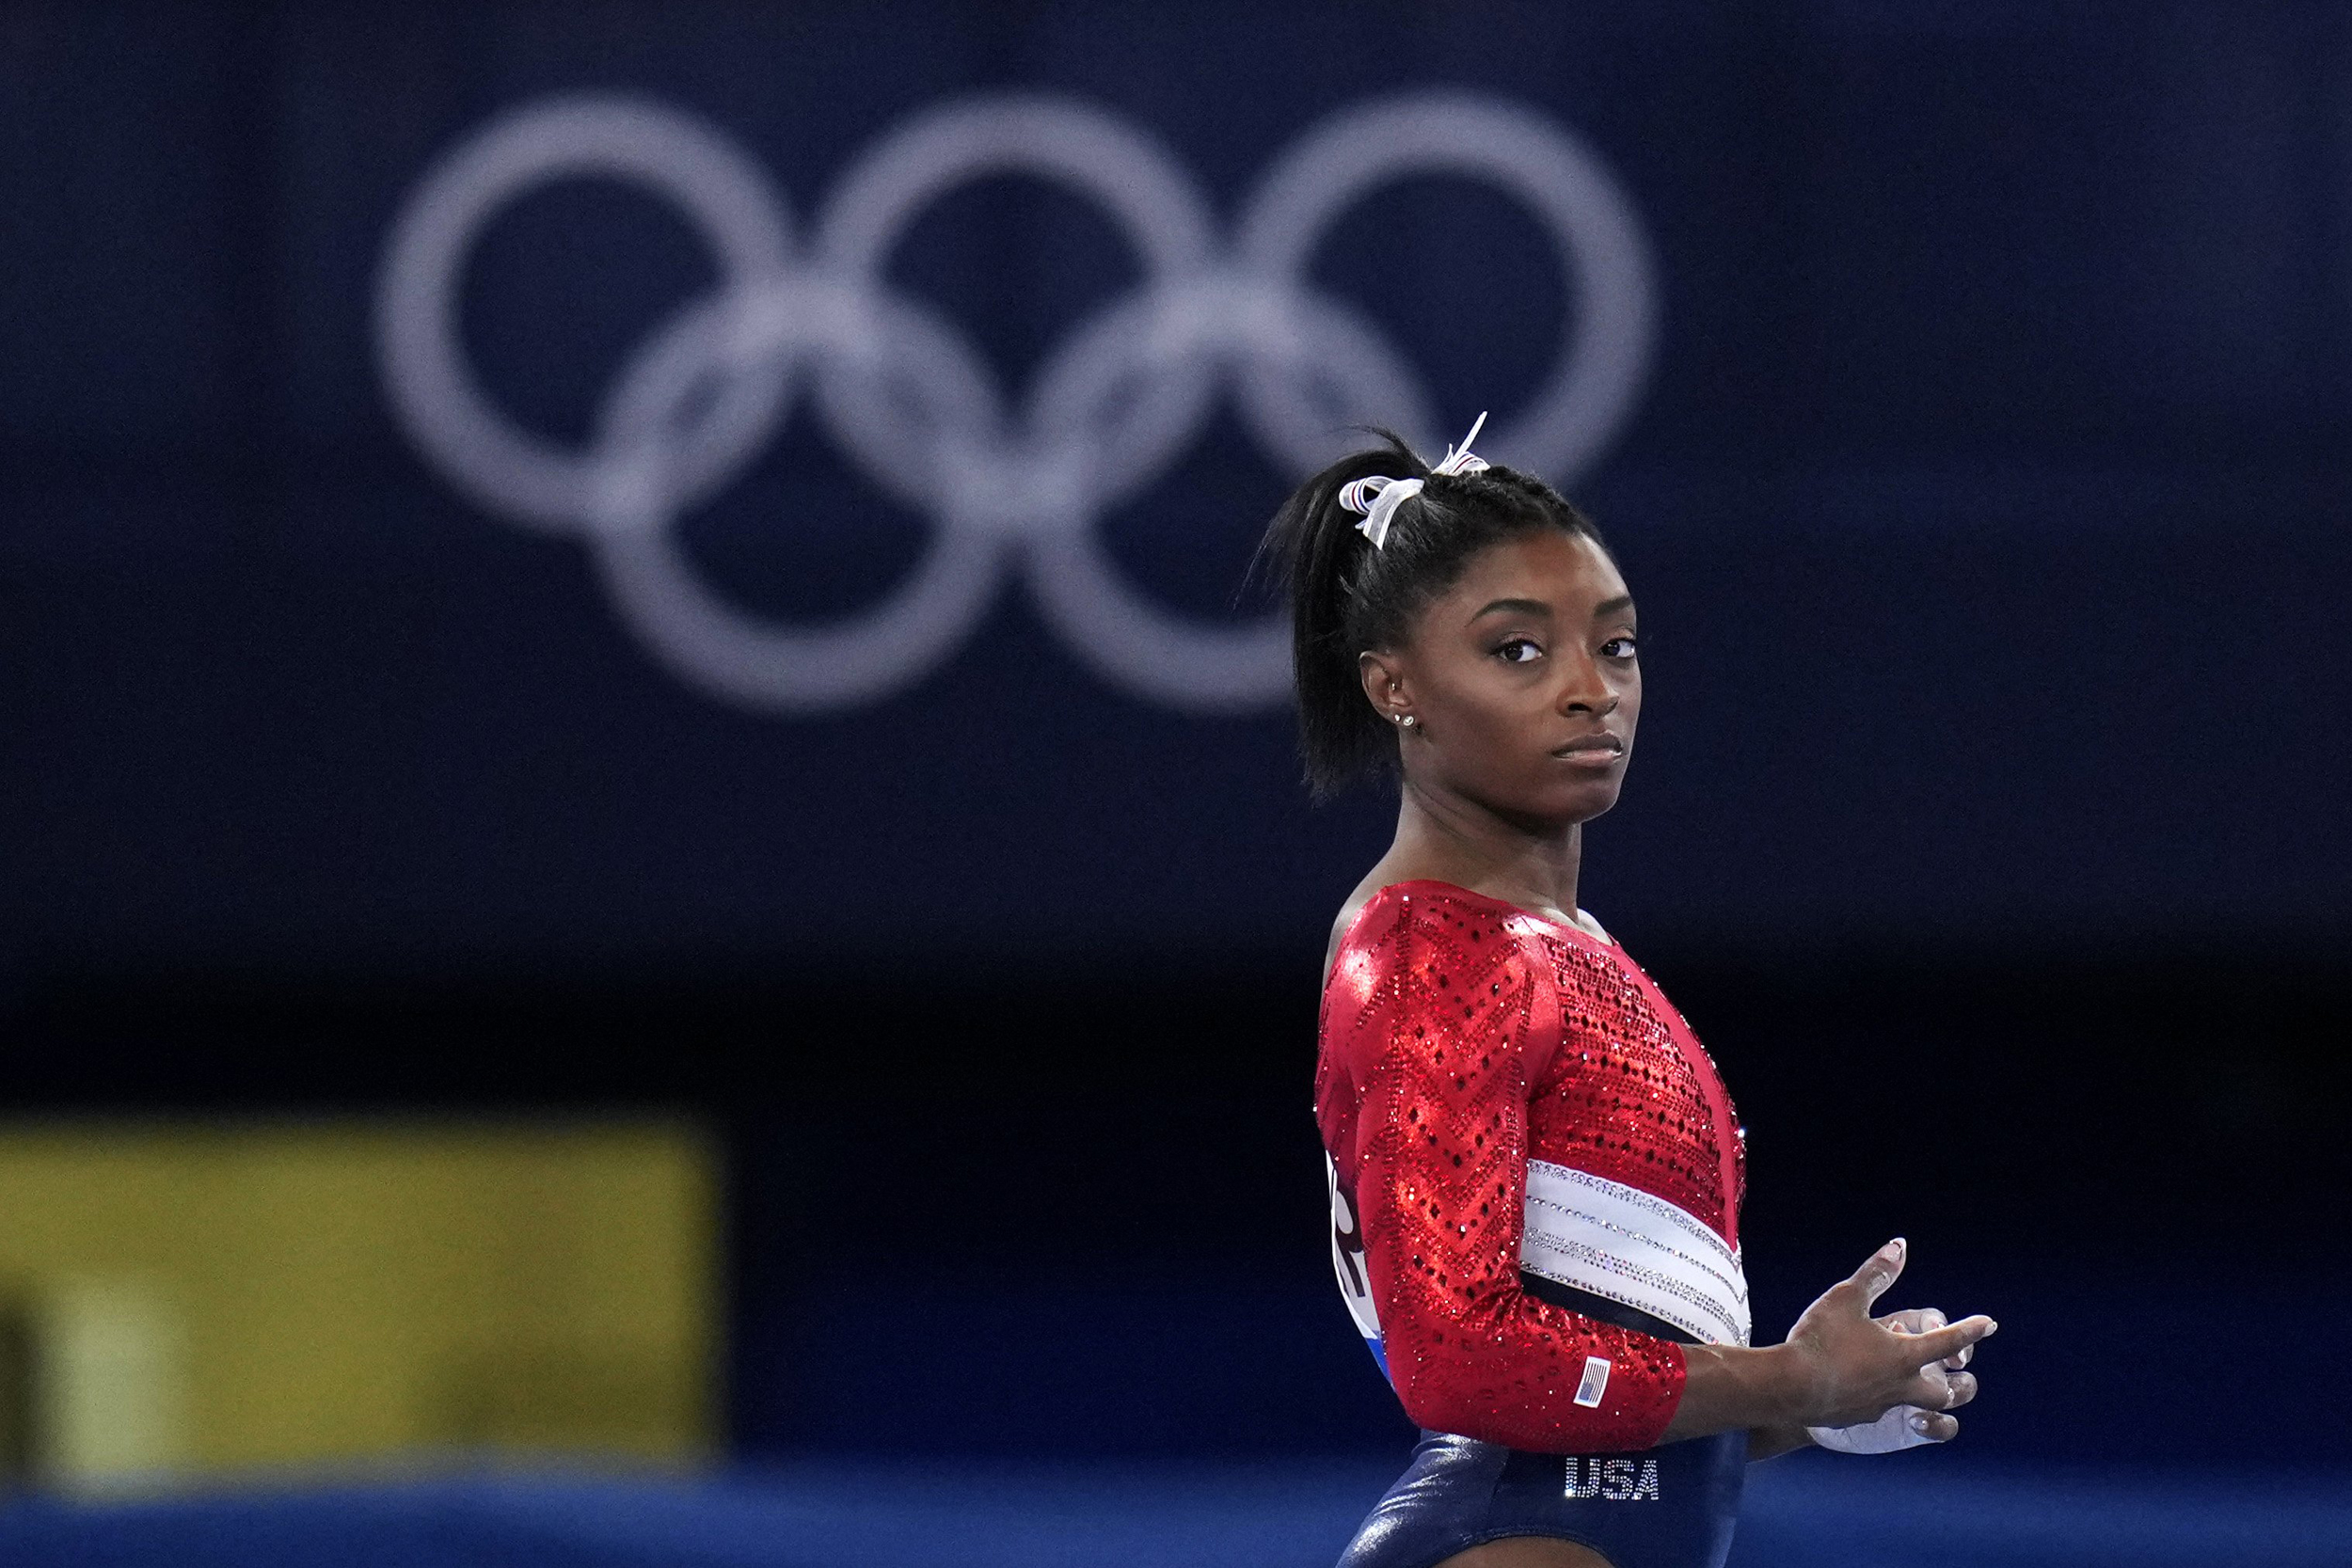 Texas official apologizes after calling Simone Biles a 'national embarrassment'